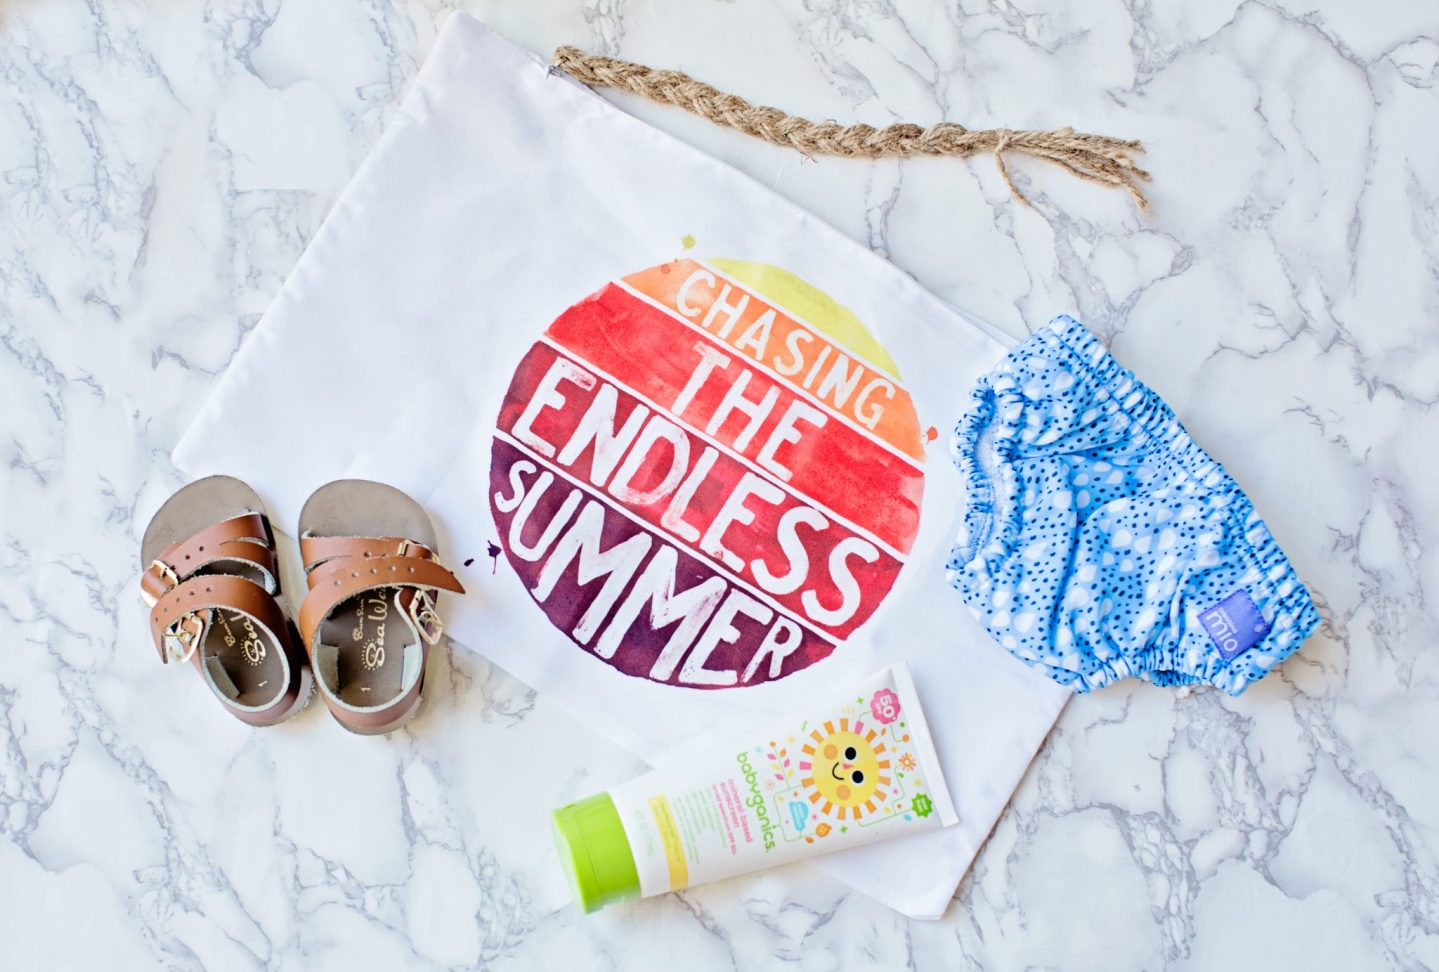 baby sandles, sun tan lotion and sunscreen with bag saying ' chasing the endless summer'